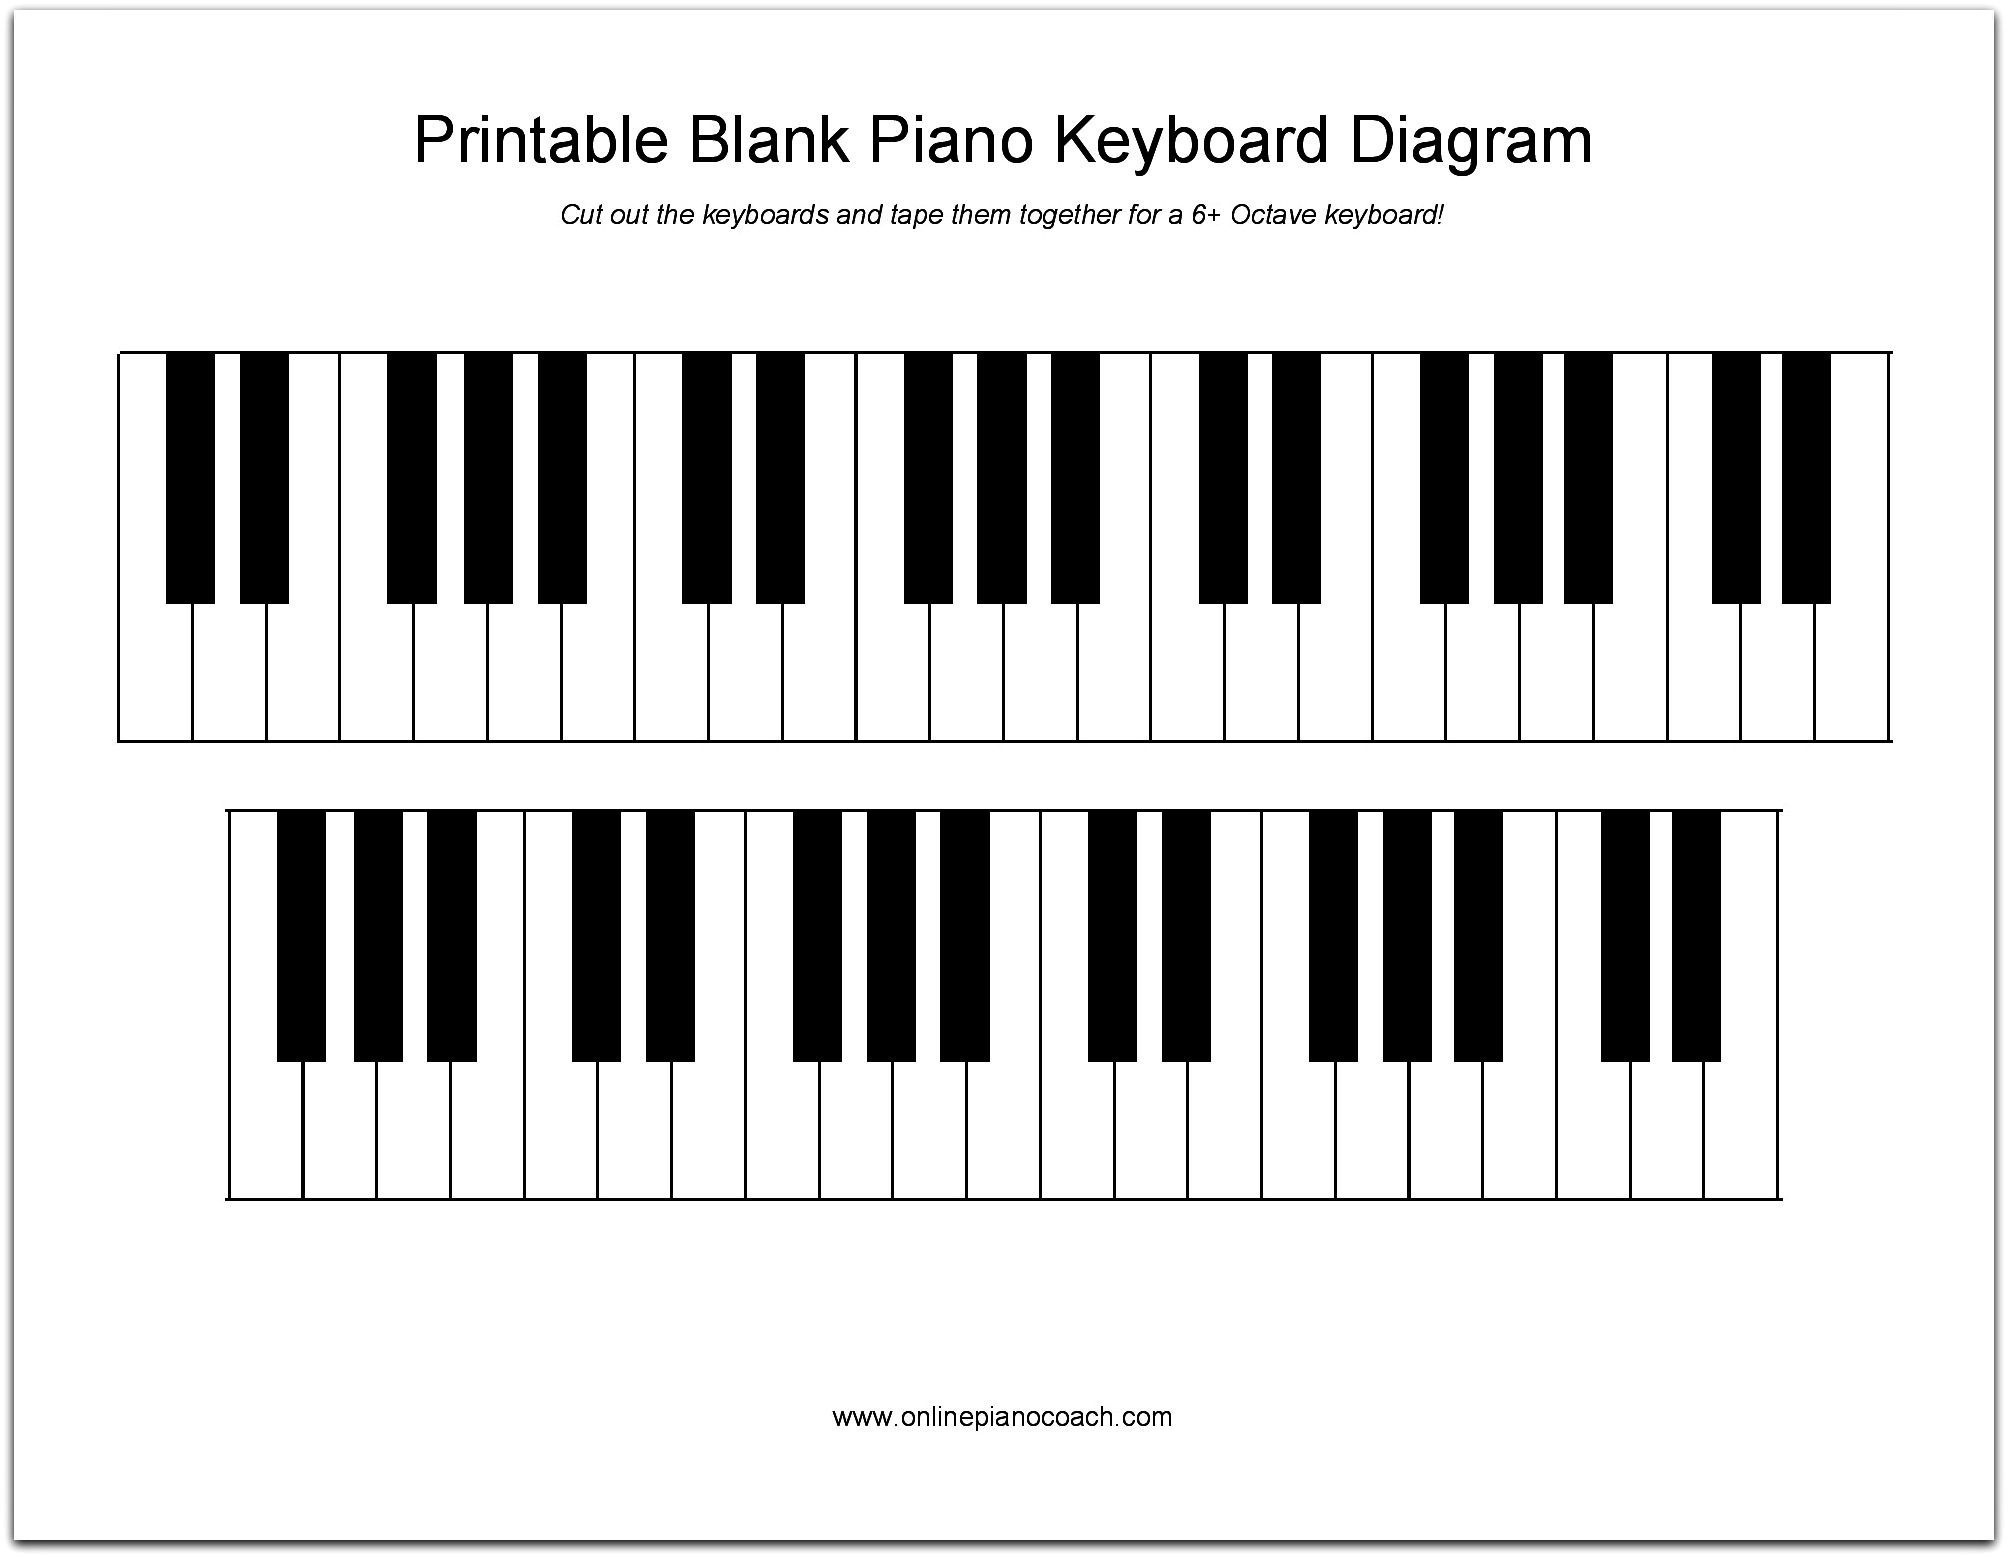 Printable Piano Keyboard Diagram In 2019 | Music | Piano, Easy Piano - Free Printable Keyboard Stickers